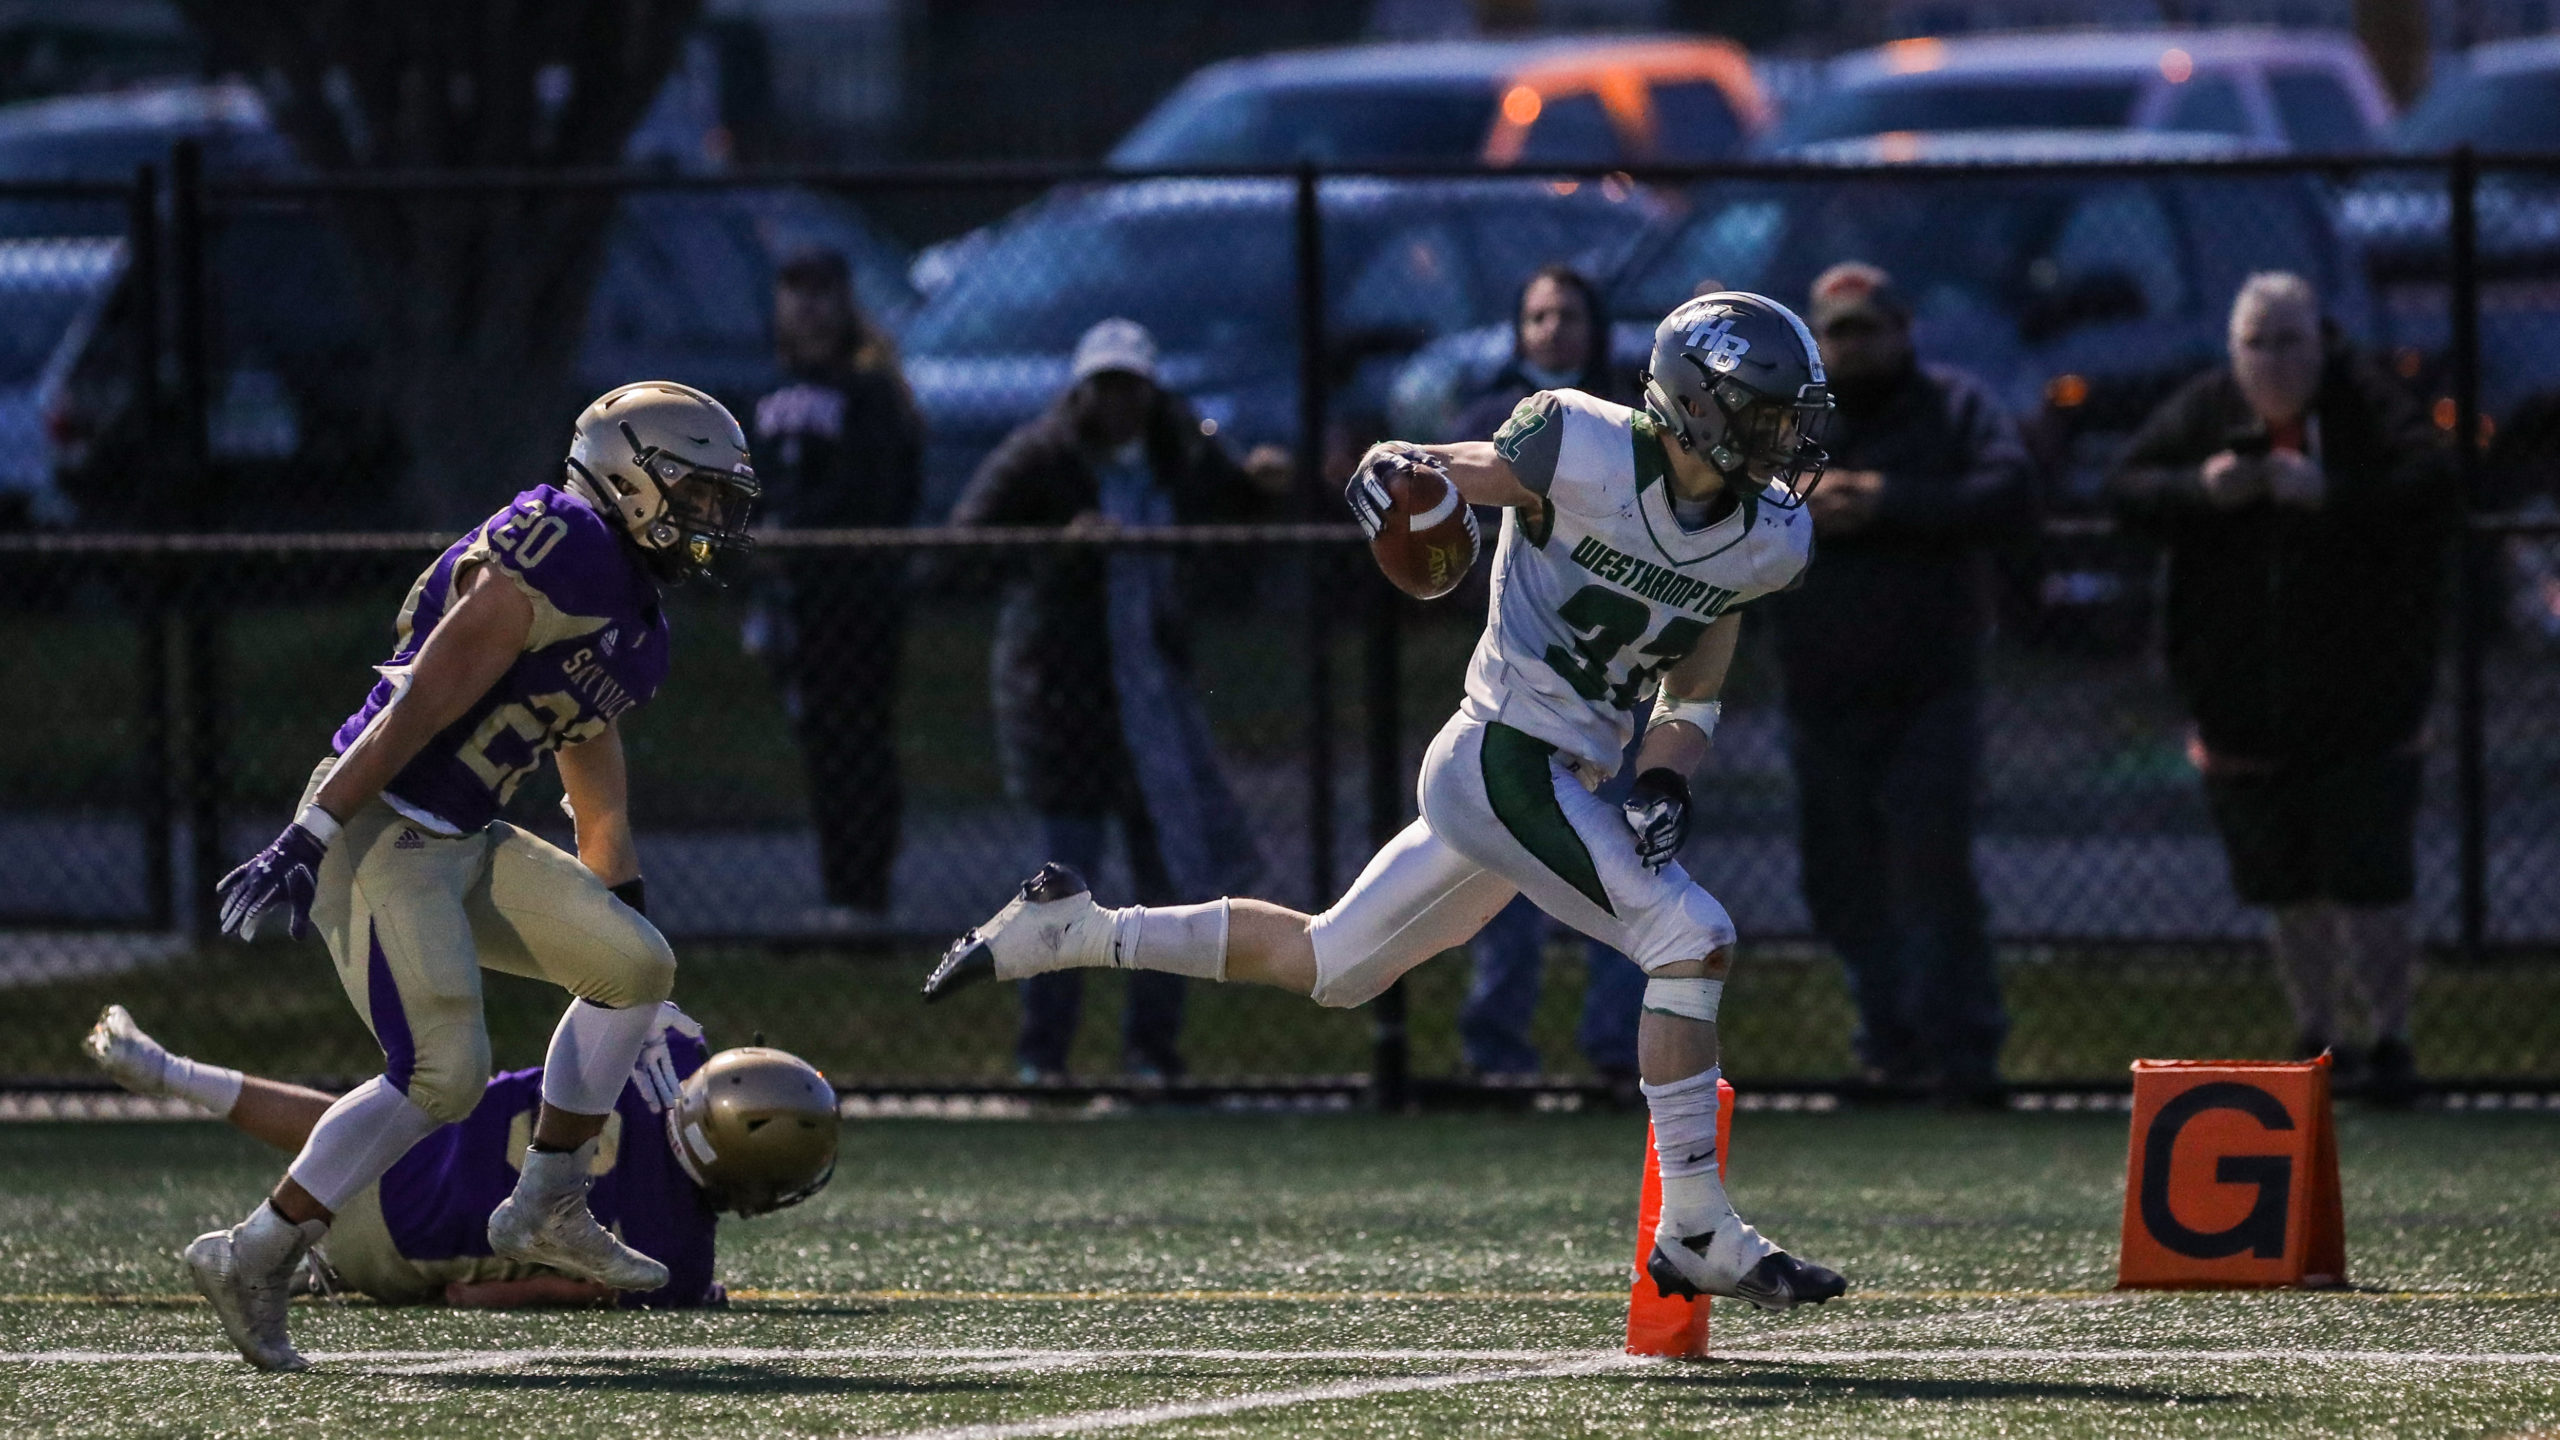 Senior Gavin McIntyre eludes a pair of Sayville defenders and crosses the goal line for what was the Hurricanes only touchdown of the game.